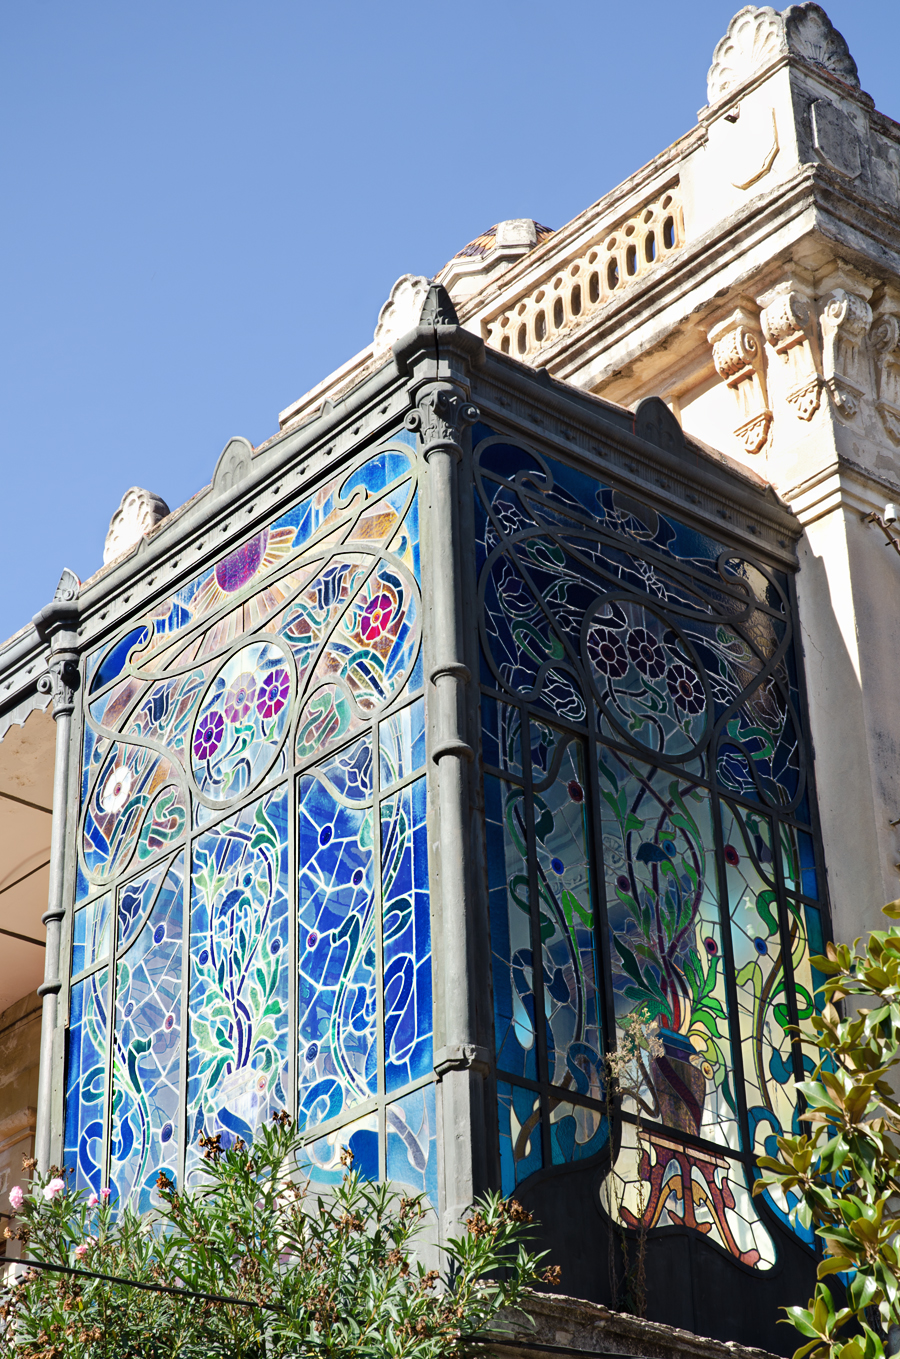 Stained Glass balcony at Cal Calixtus house, Sant Sadurni D'Anoia